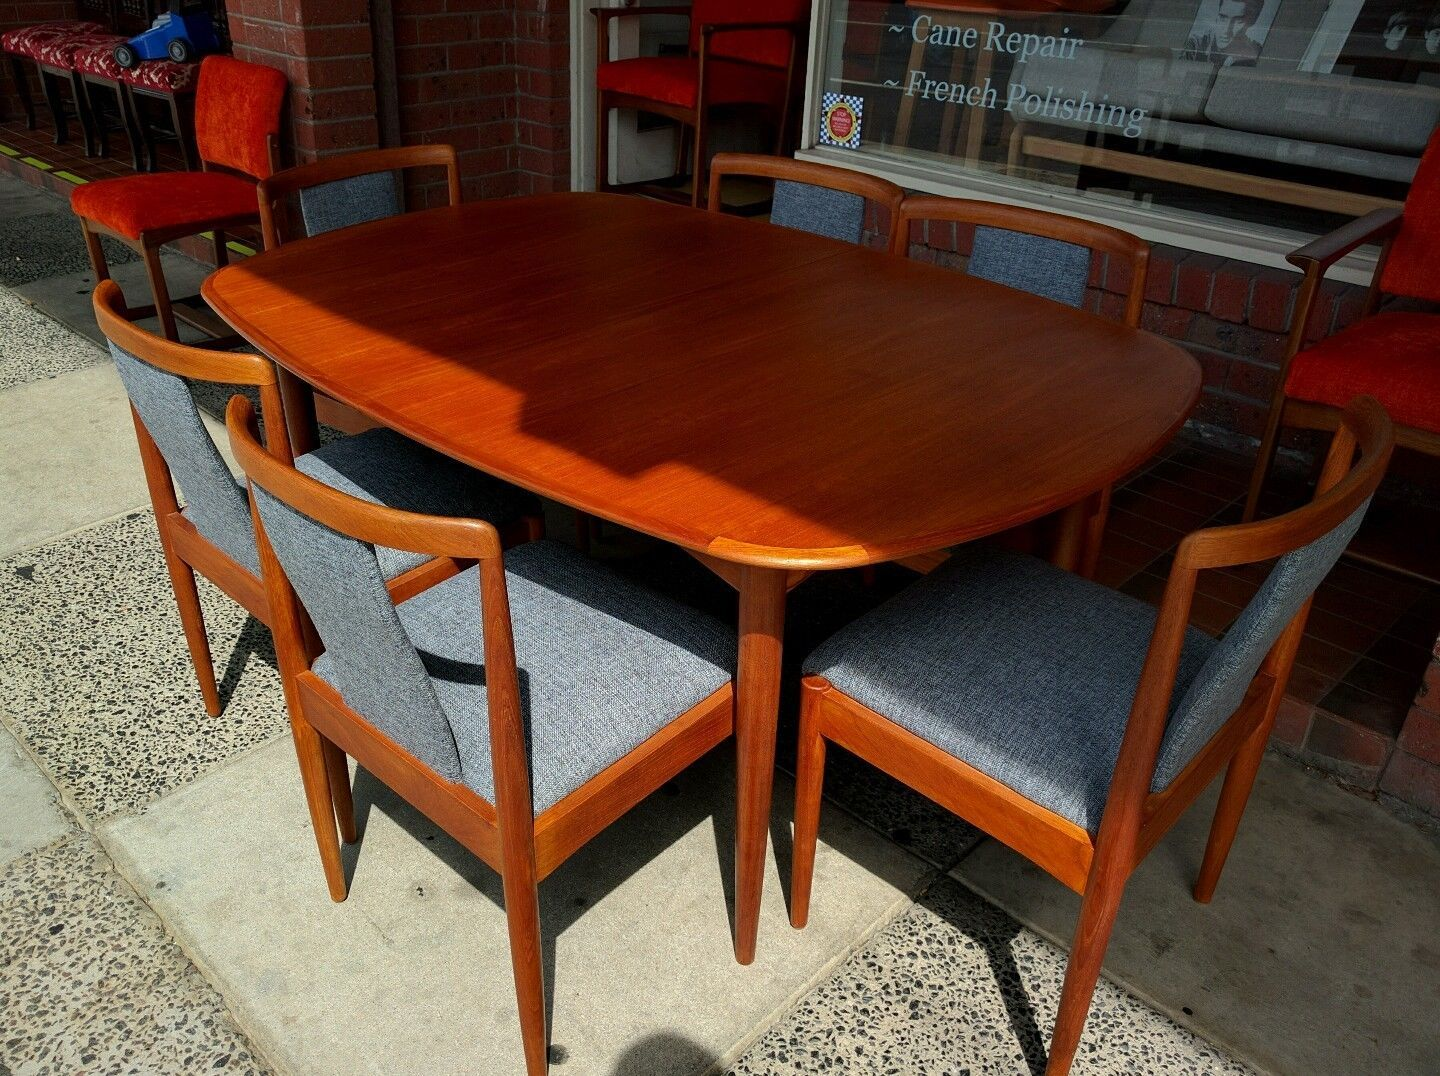 Retro 1960s Parker Dining Table 6 Chairs Restorered and